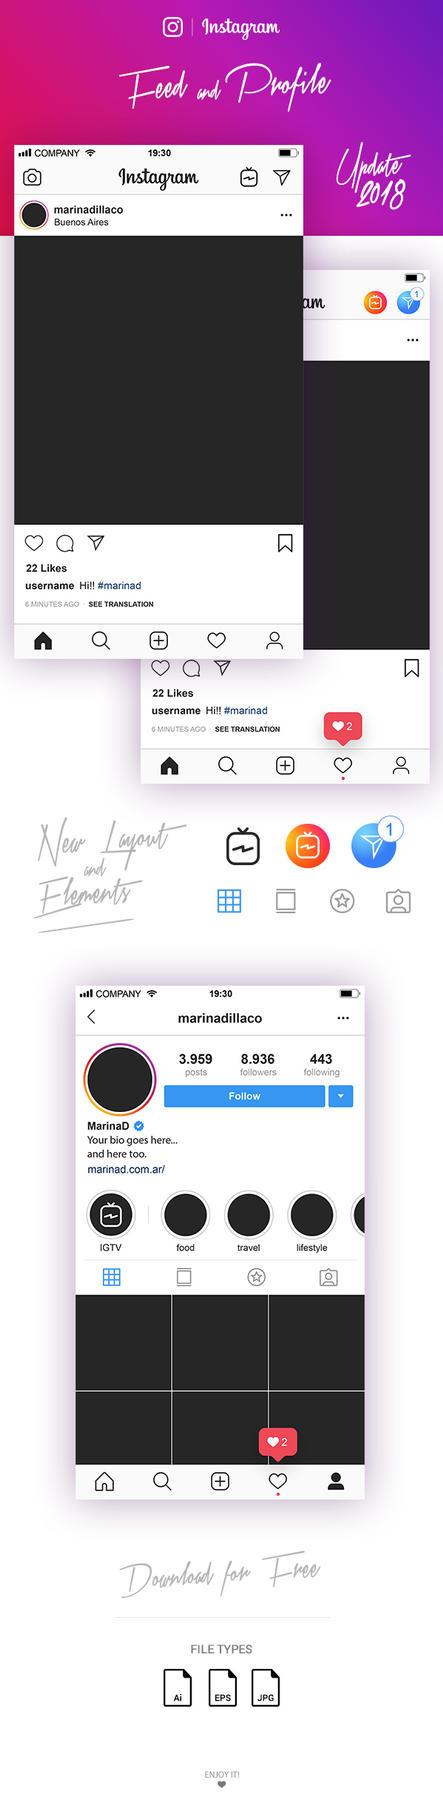 FREE Instagram Layout Feed and Profile UI 2018 by MarinaD